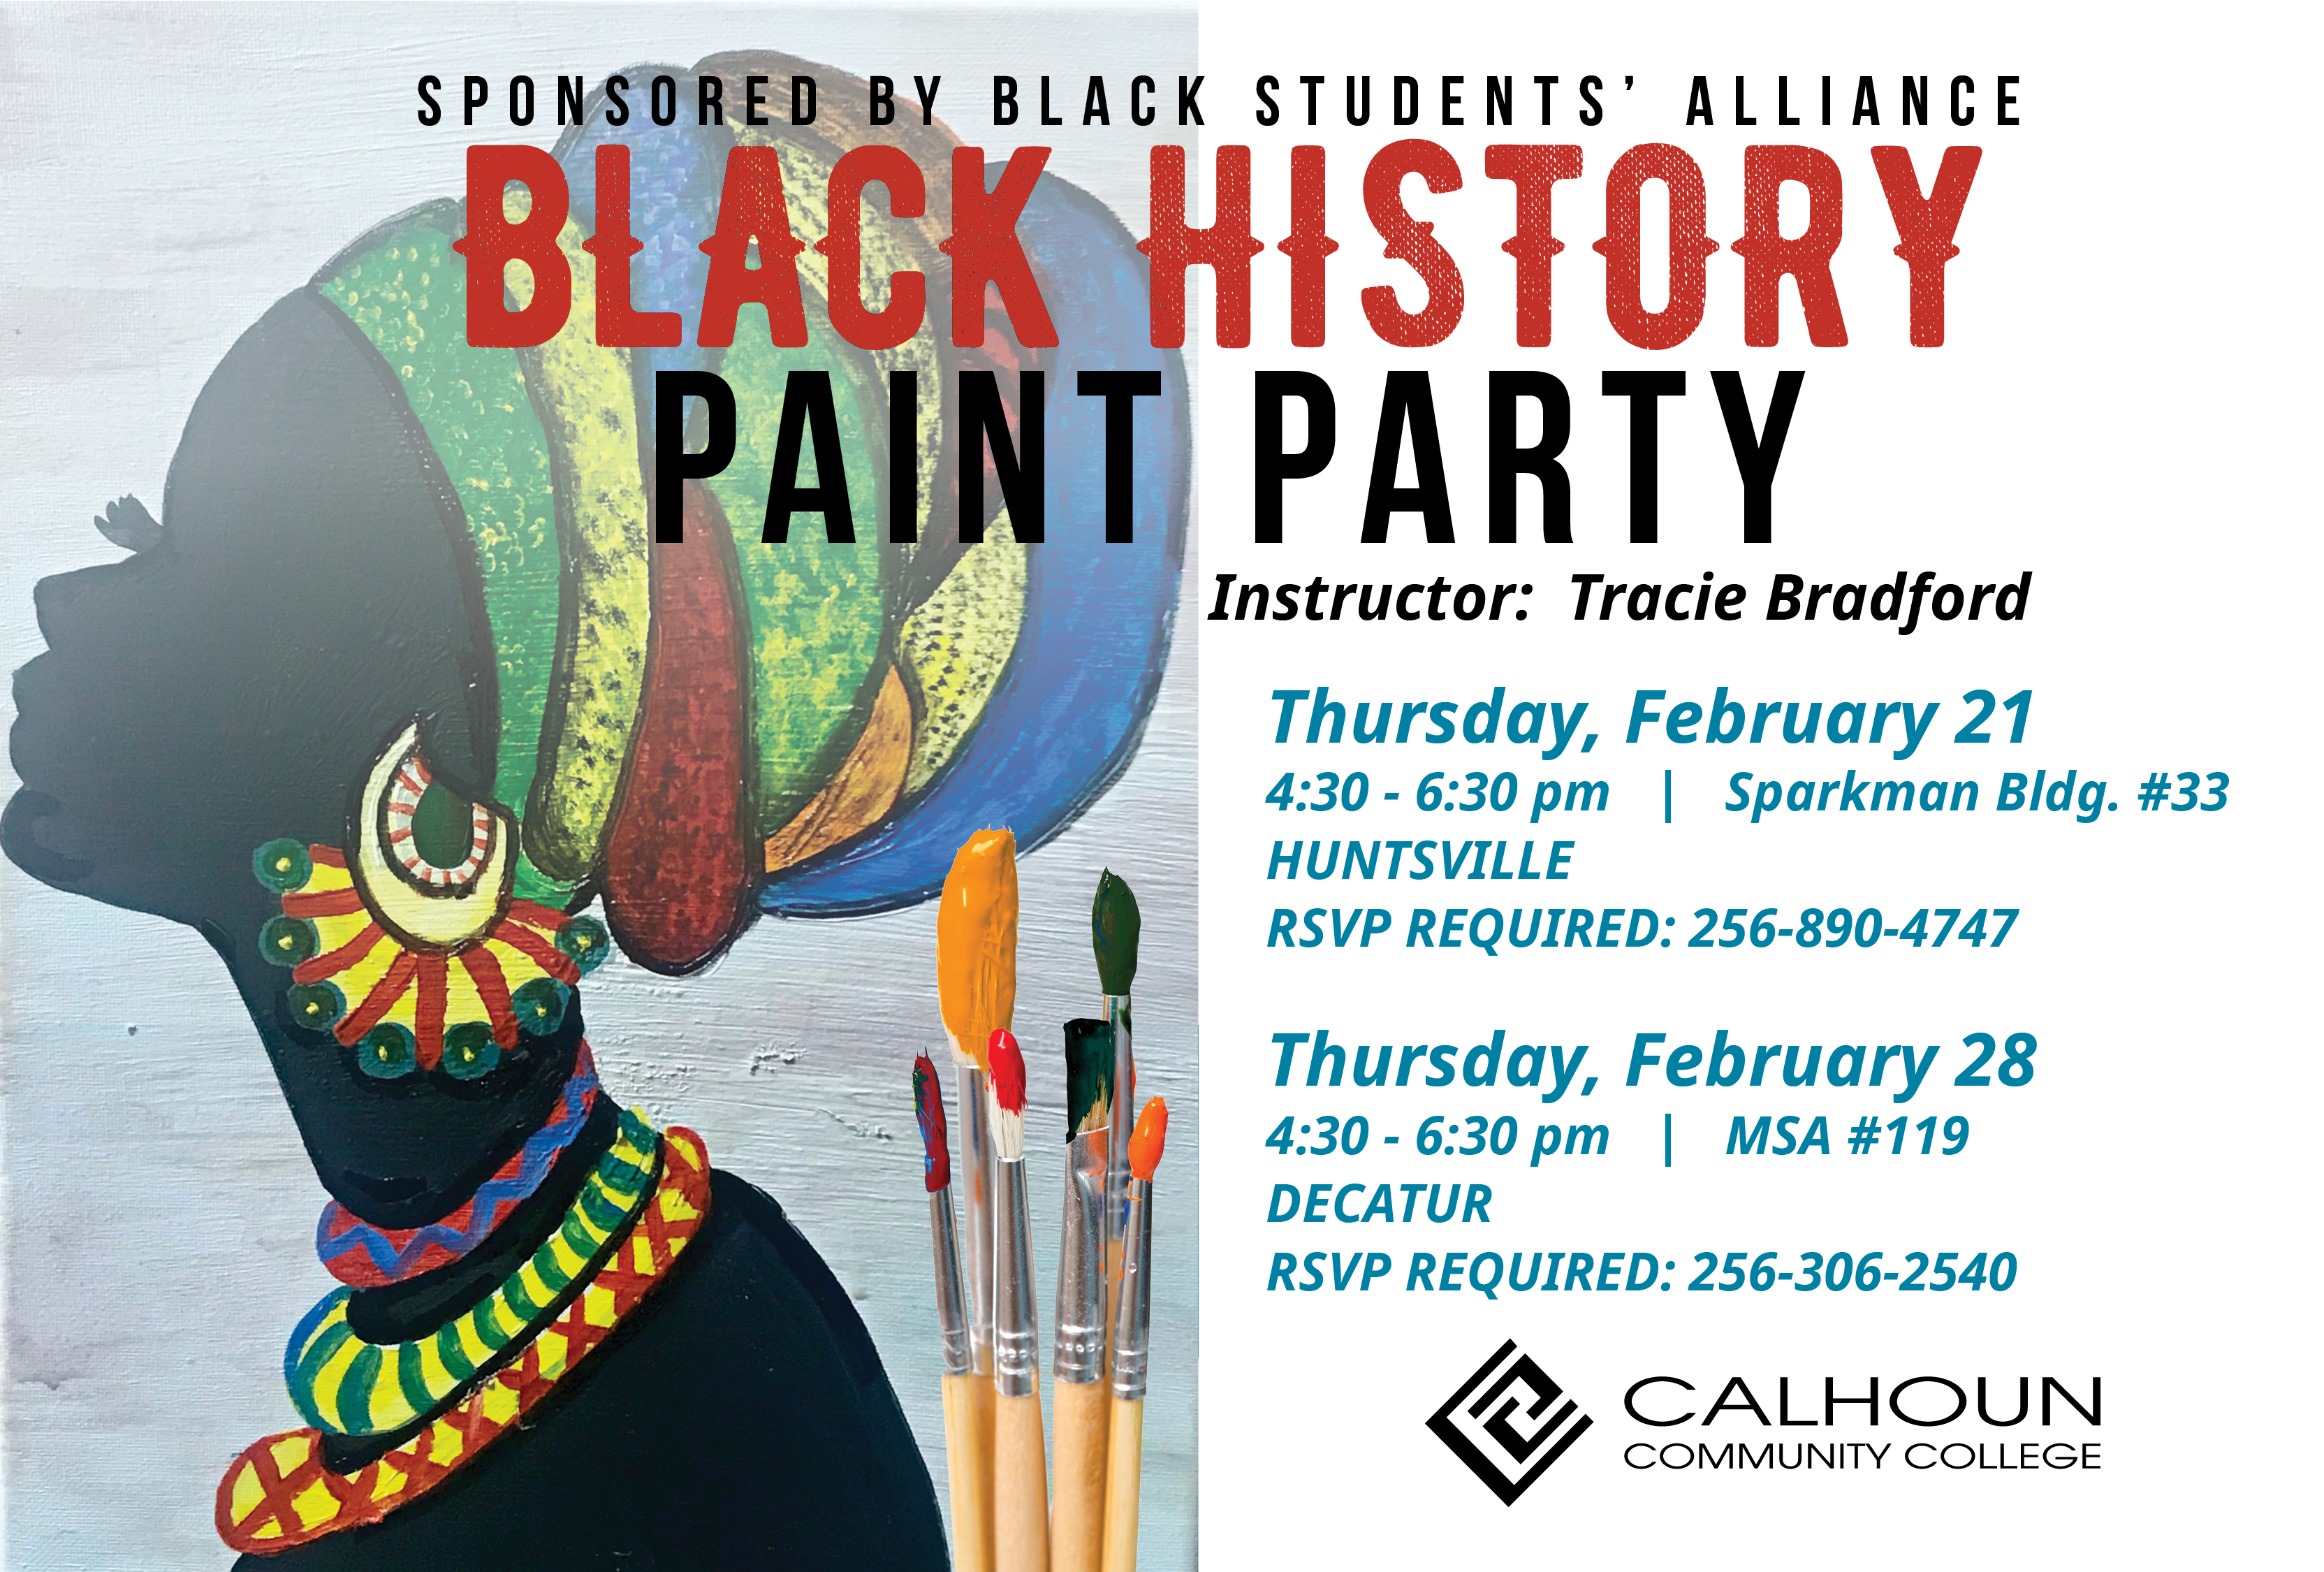 Black History Paint Party Instructor: Tracie Bradford Huntsville Campus Sparkman Building, Room 33 RSVP required to 256.890.4747 Thursday, February 21, 2019 4:30 - 6:30 pm Decatur Campus MSA 119 RSVP required to 256.306.2540 Thursday, February 28, 2019 4:30 - 6:30 pm